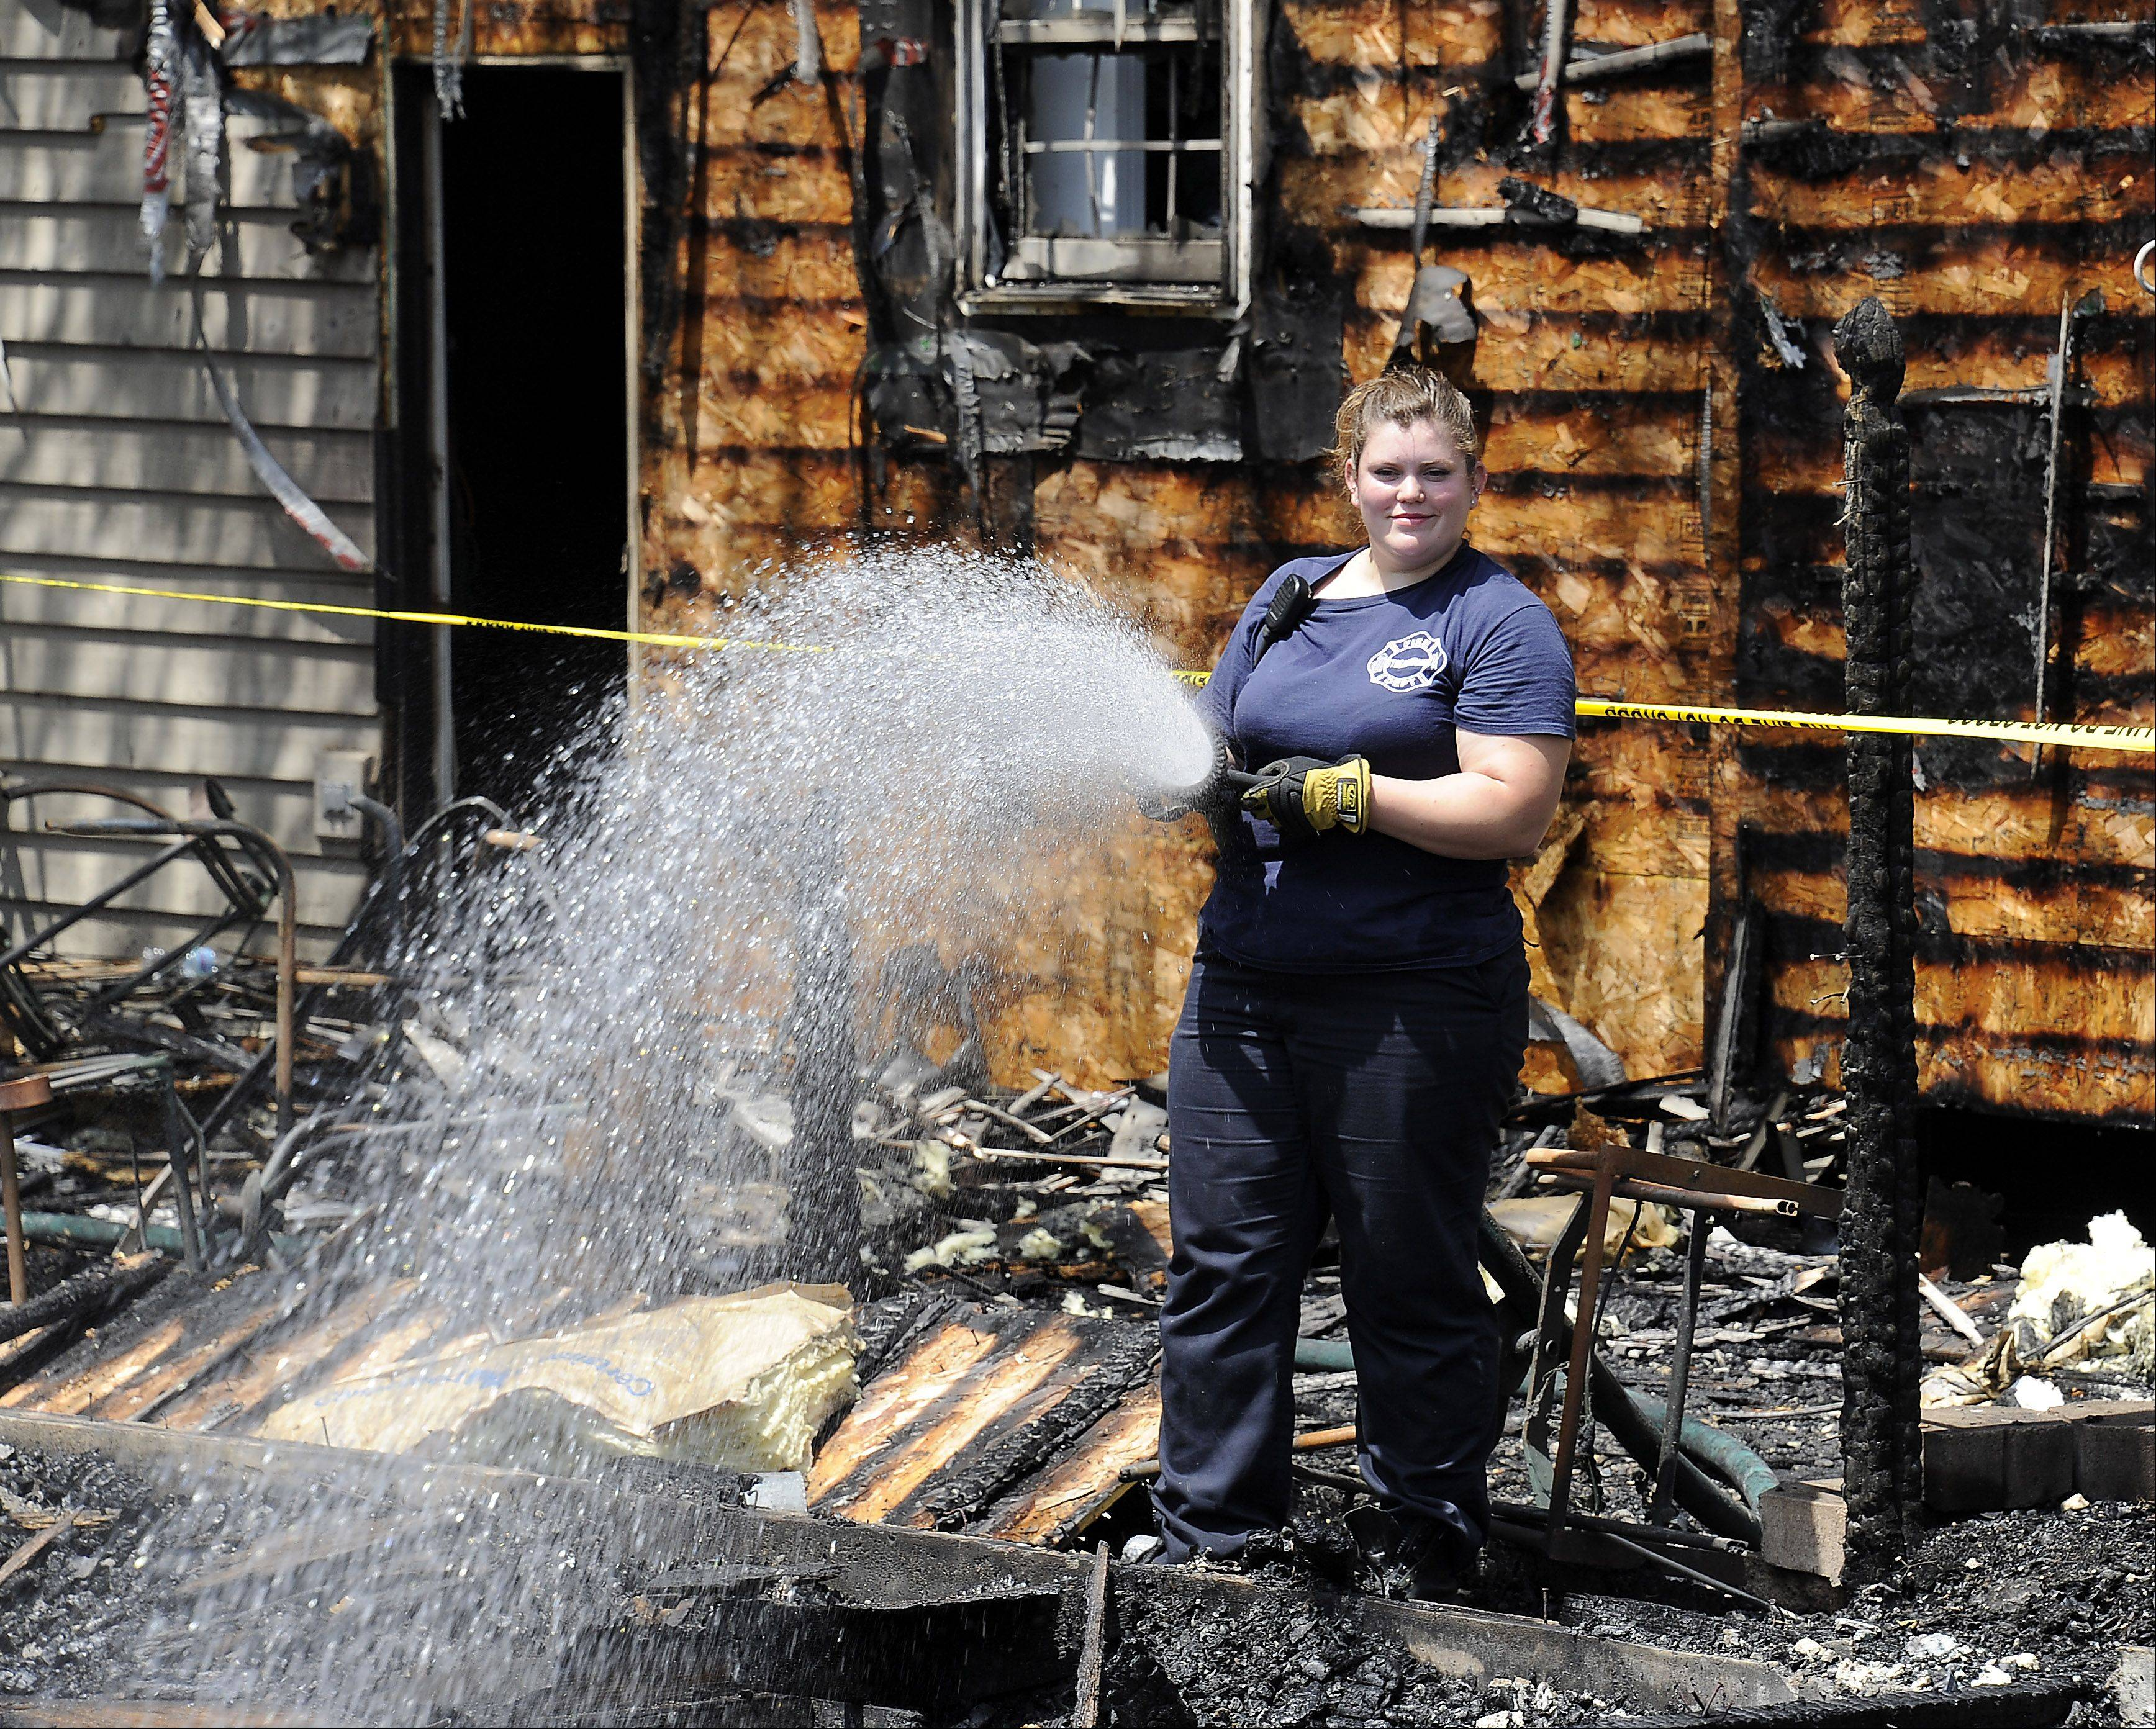 Streamwood firefighter/paramedic Lisa Meyer sprays water on the smoldering remains of a house fire in the 100 block of Grey Fox Court in Streamwood on Saturday.